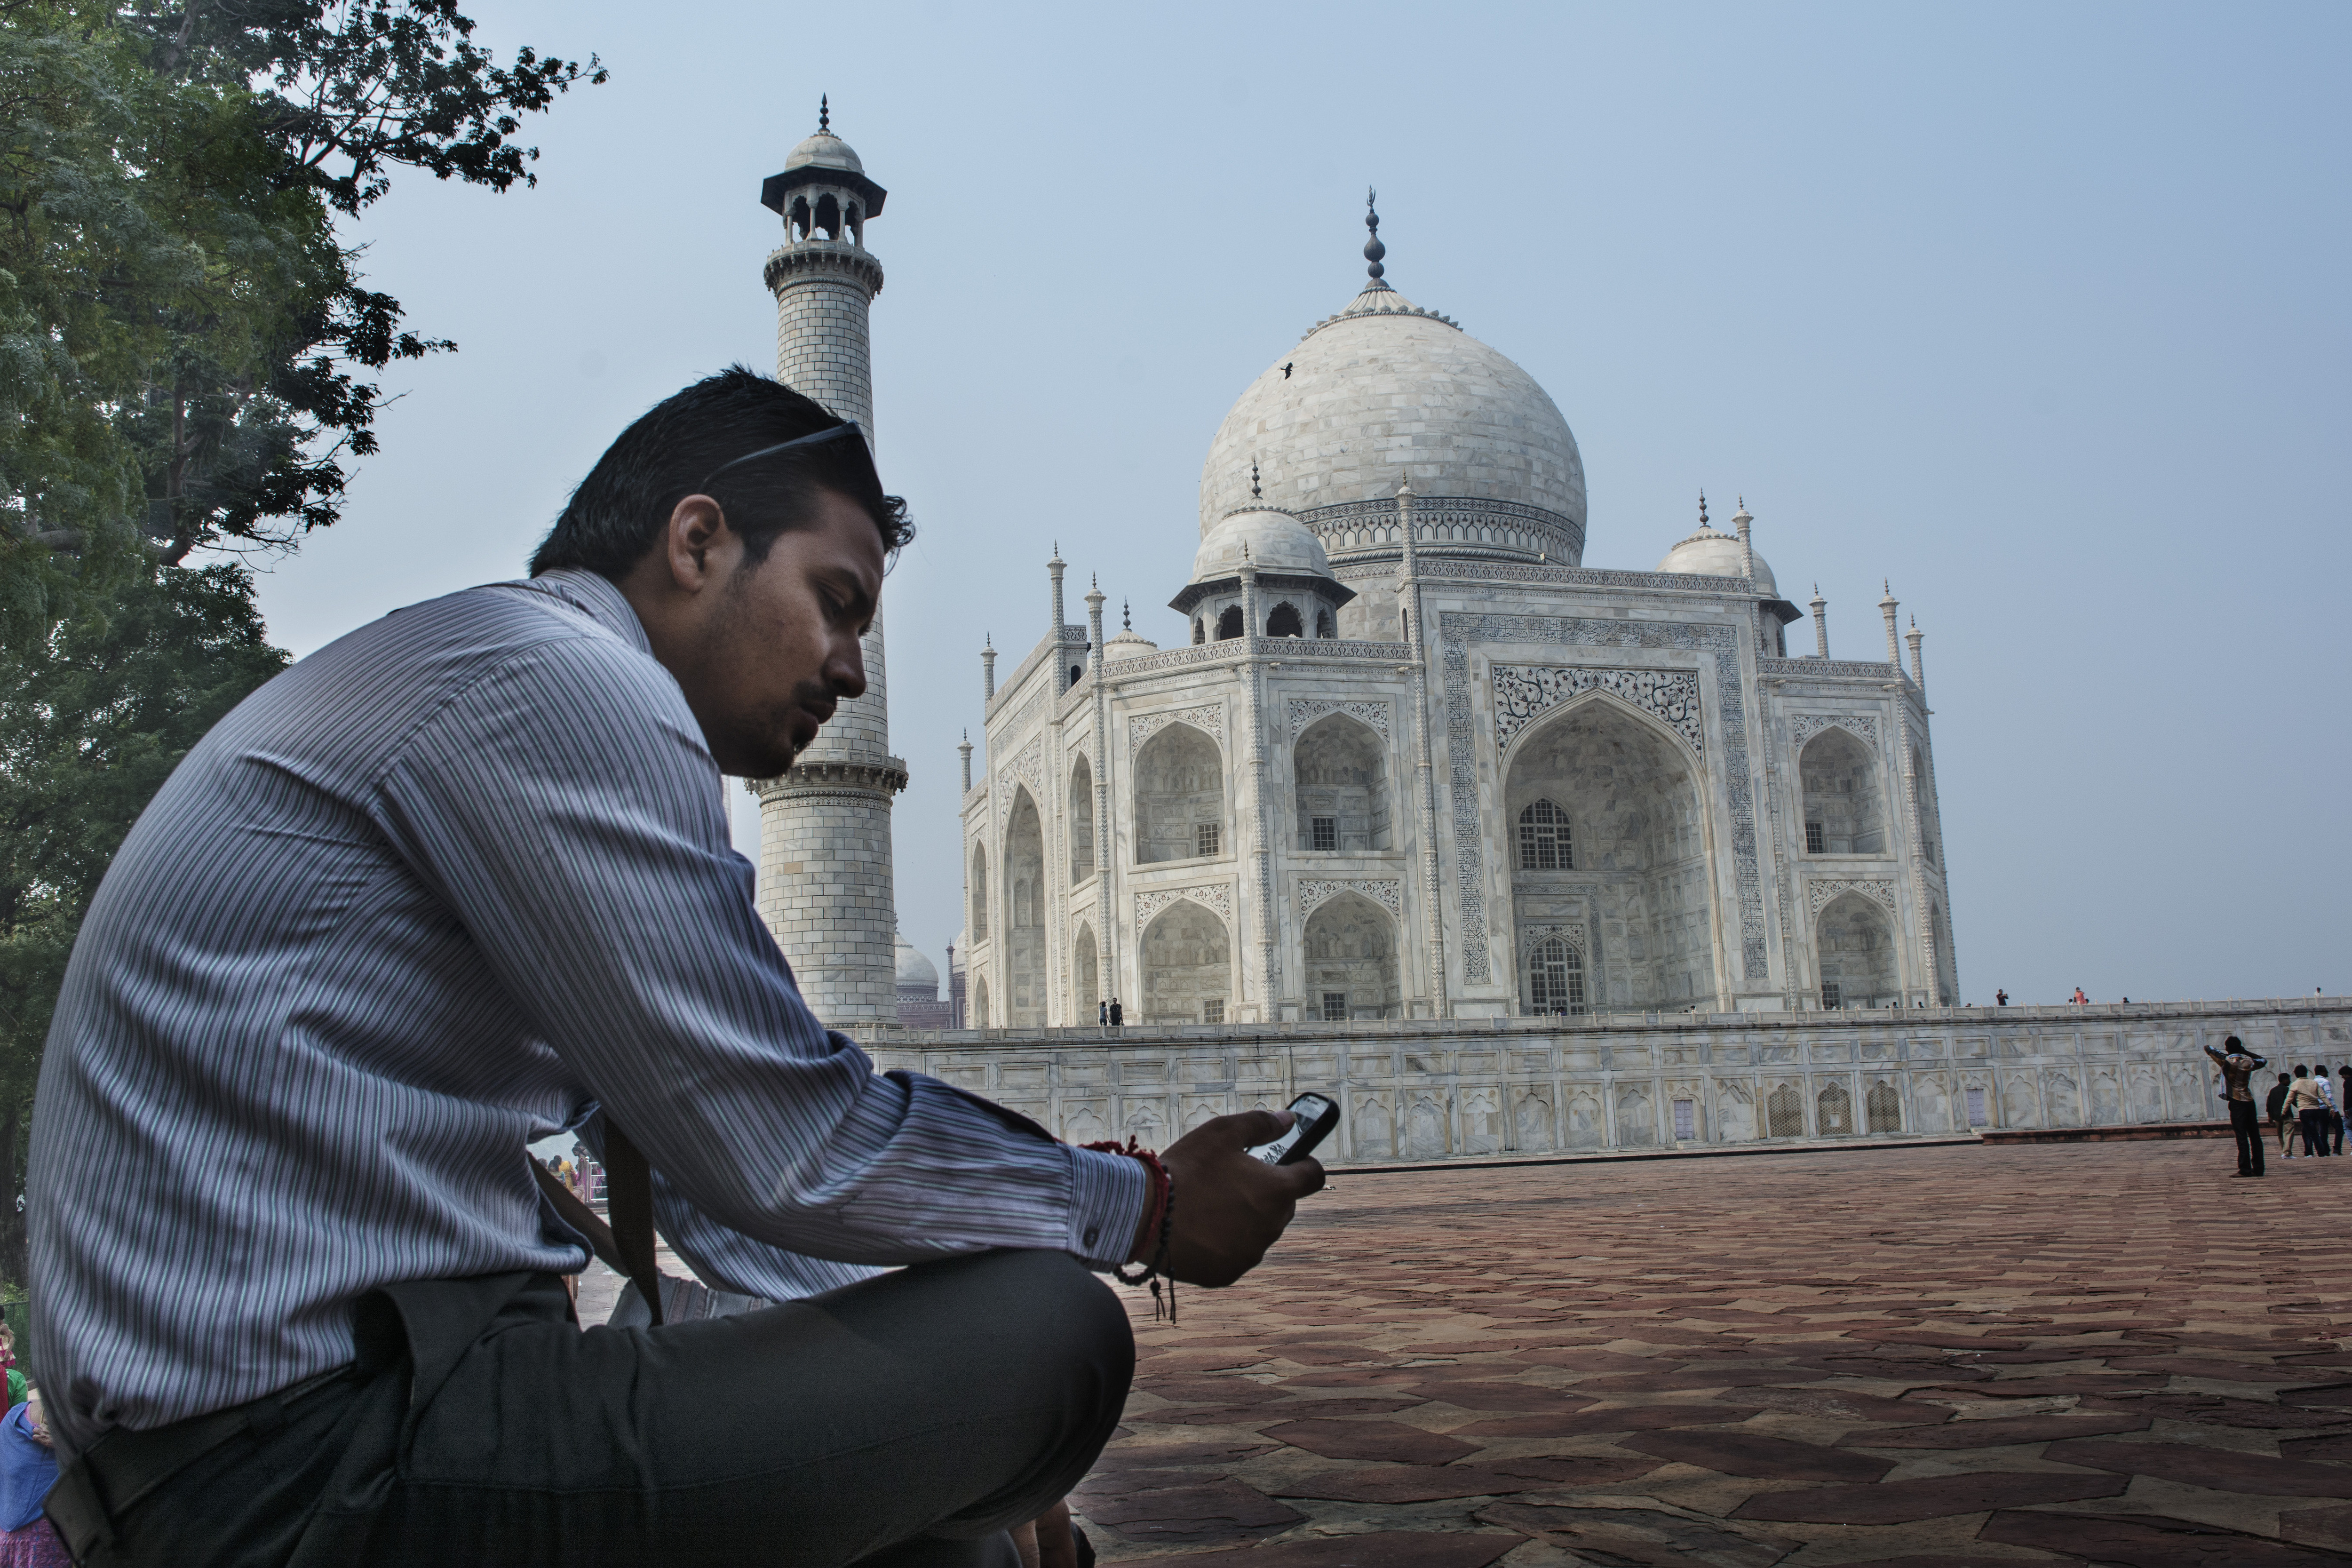 A man checks his cell phone in front of the Taj Mahal. The